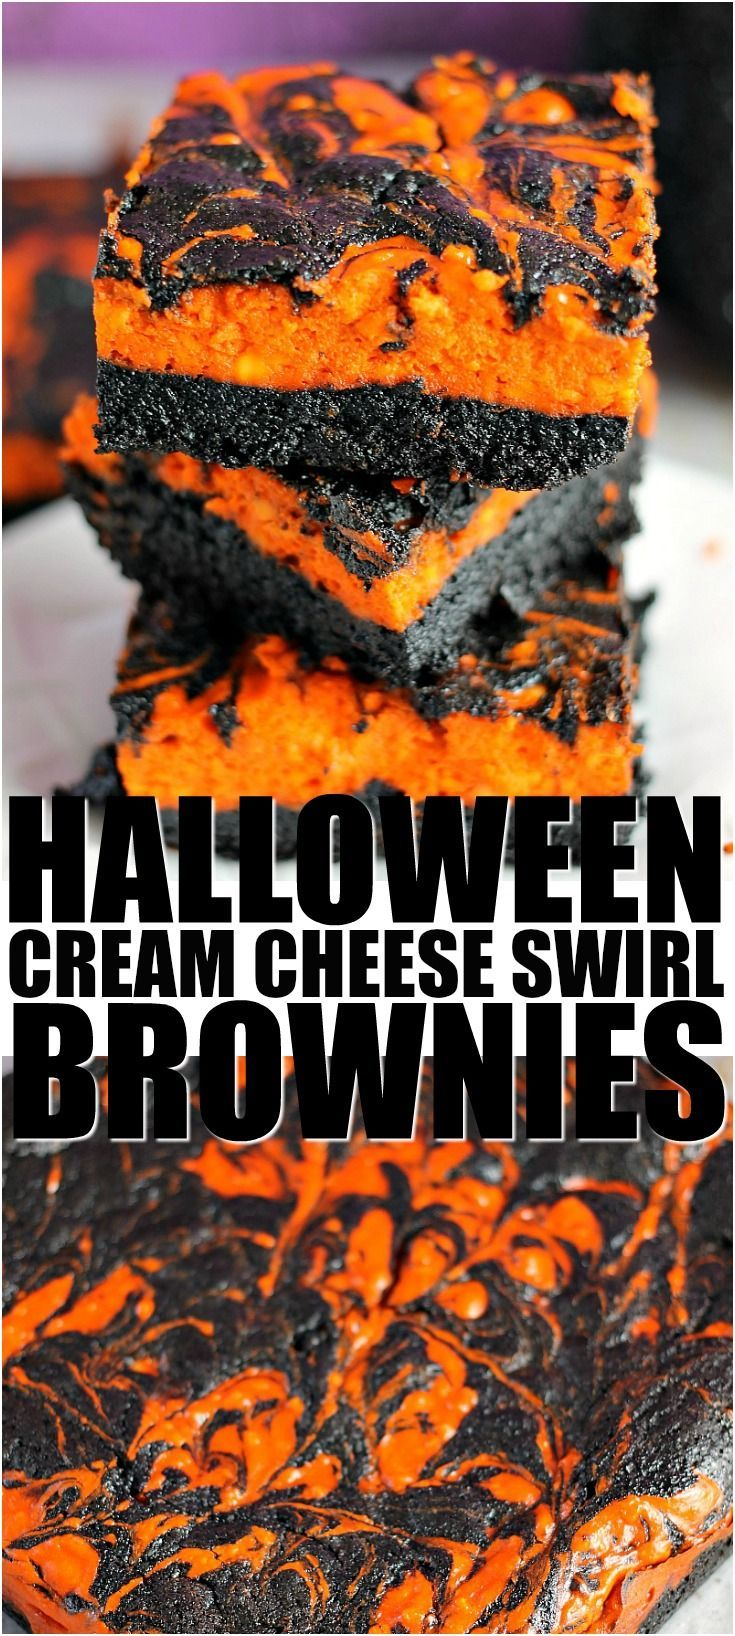 Halloween Cream Cheese Swirl Brownies have a layer of rich, dark chocolate brownie topped with a layer of orange cheesecake then swirled together for a spooky treat. | Persnickety Plates #halloweenbrownies